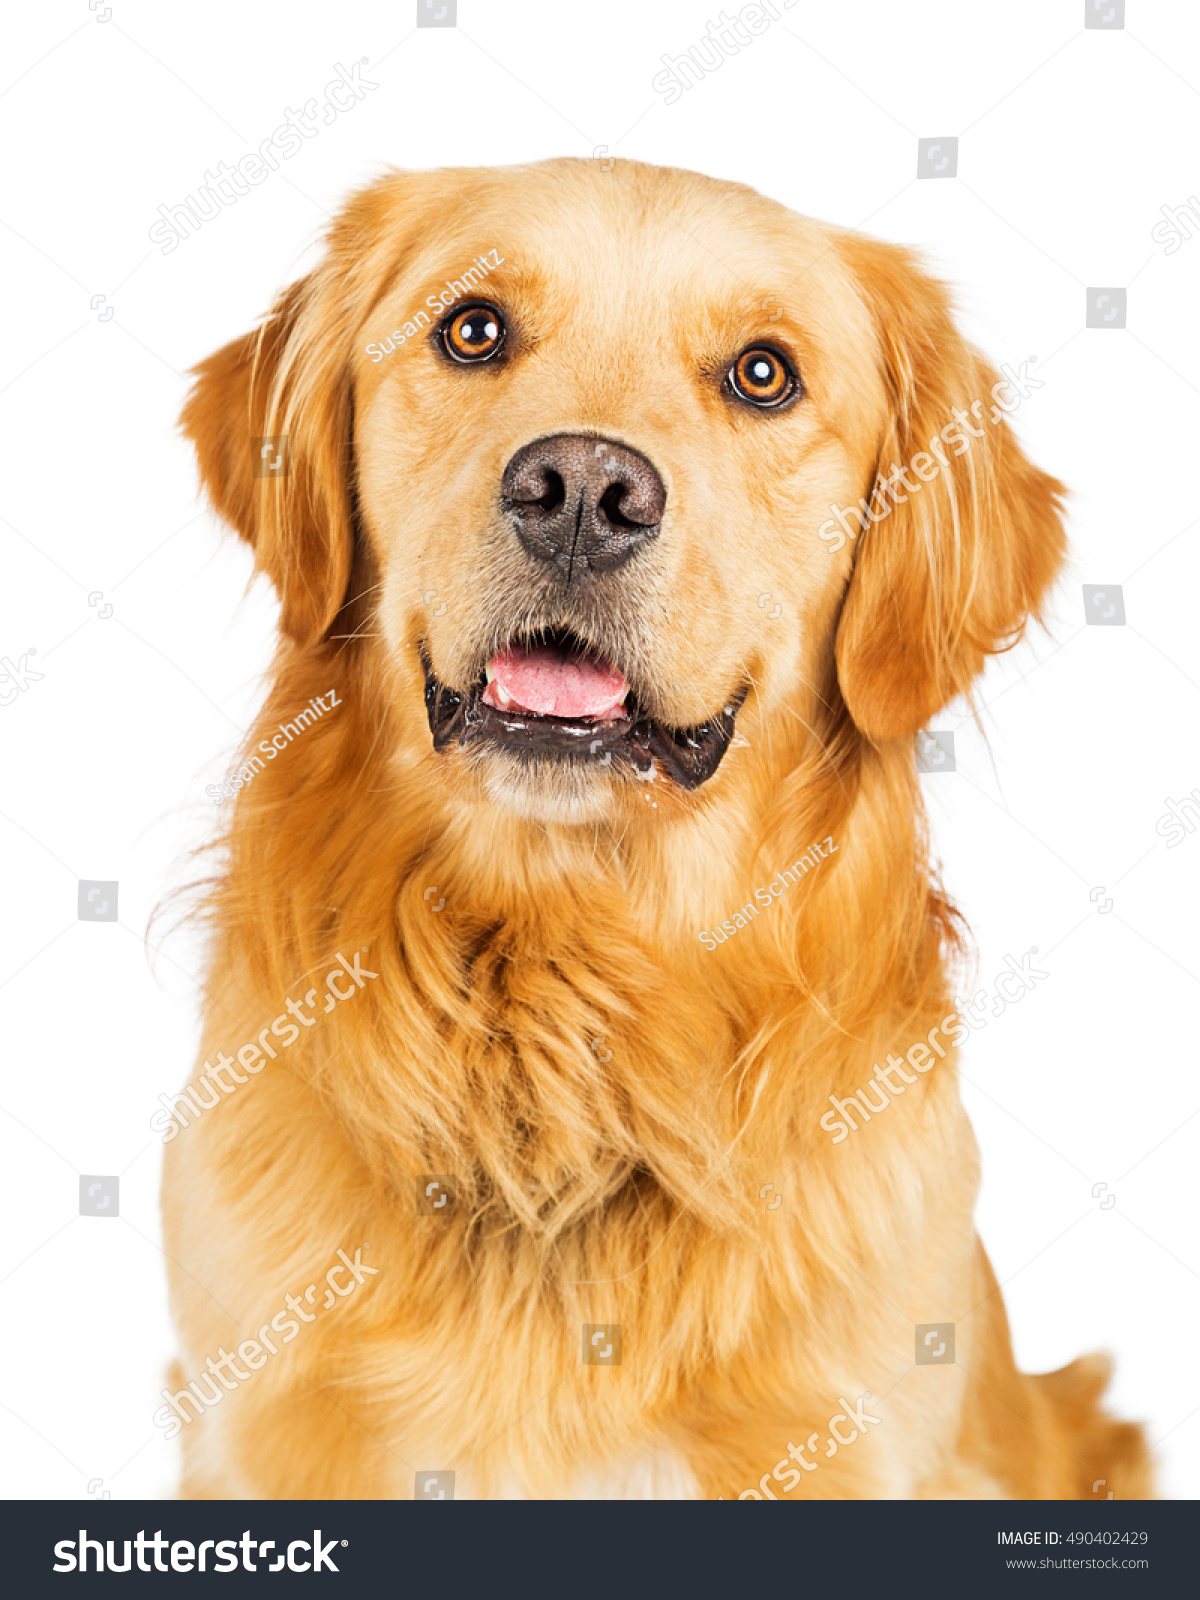 Closeup portrait of a happy and smiling Golden Retriever dog over white #490402429